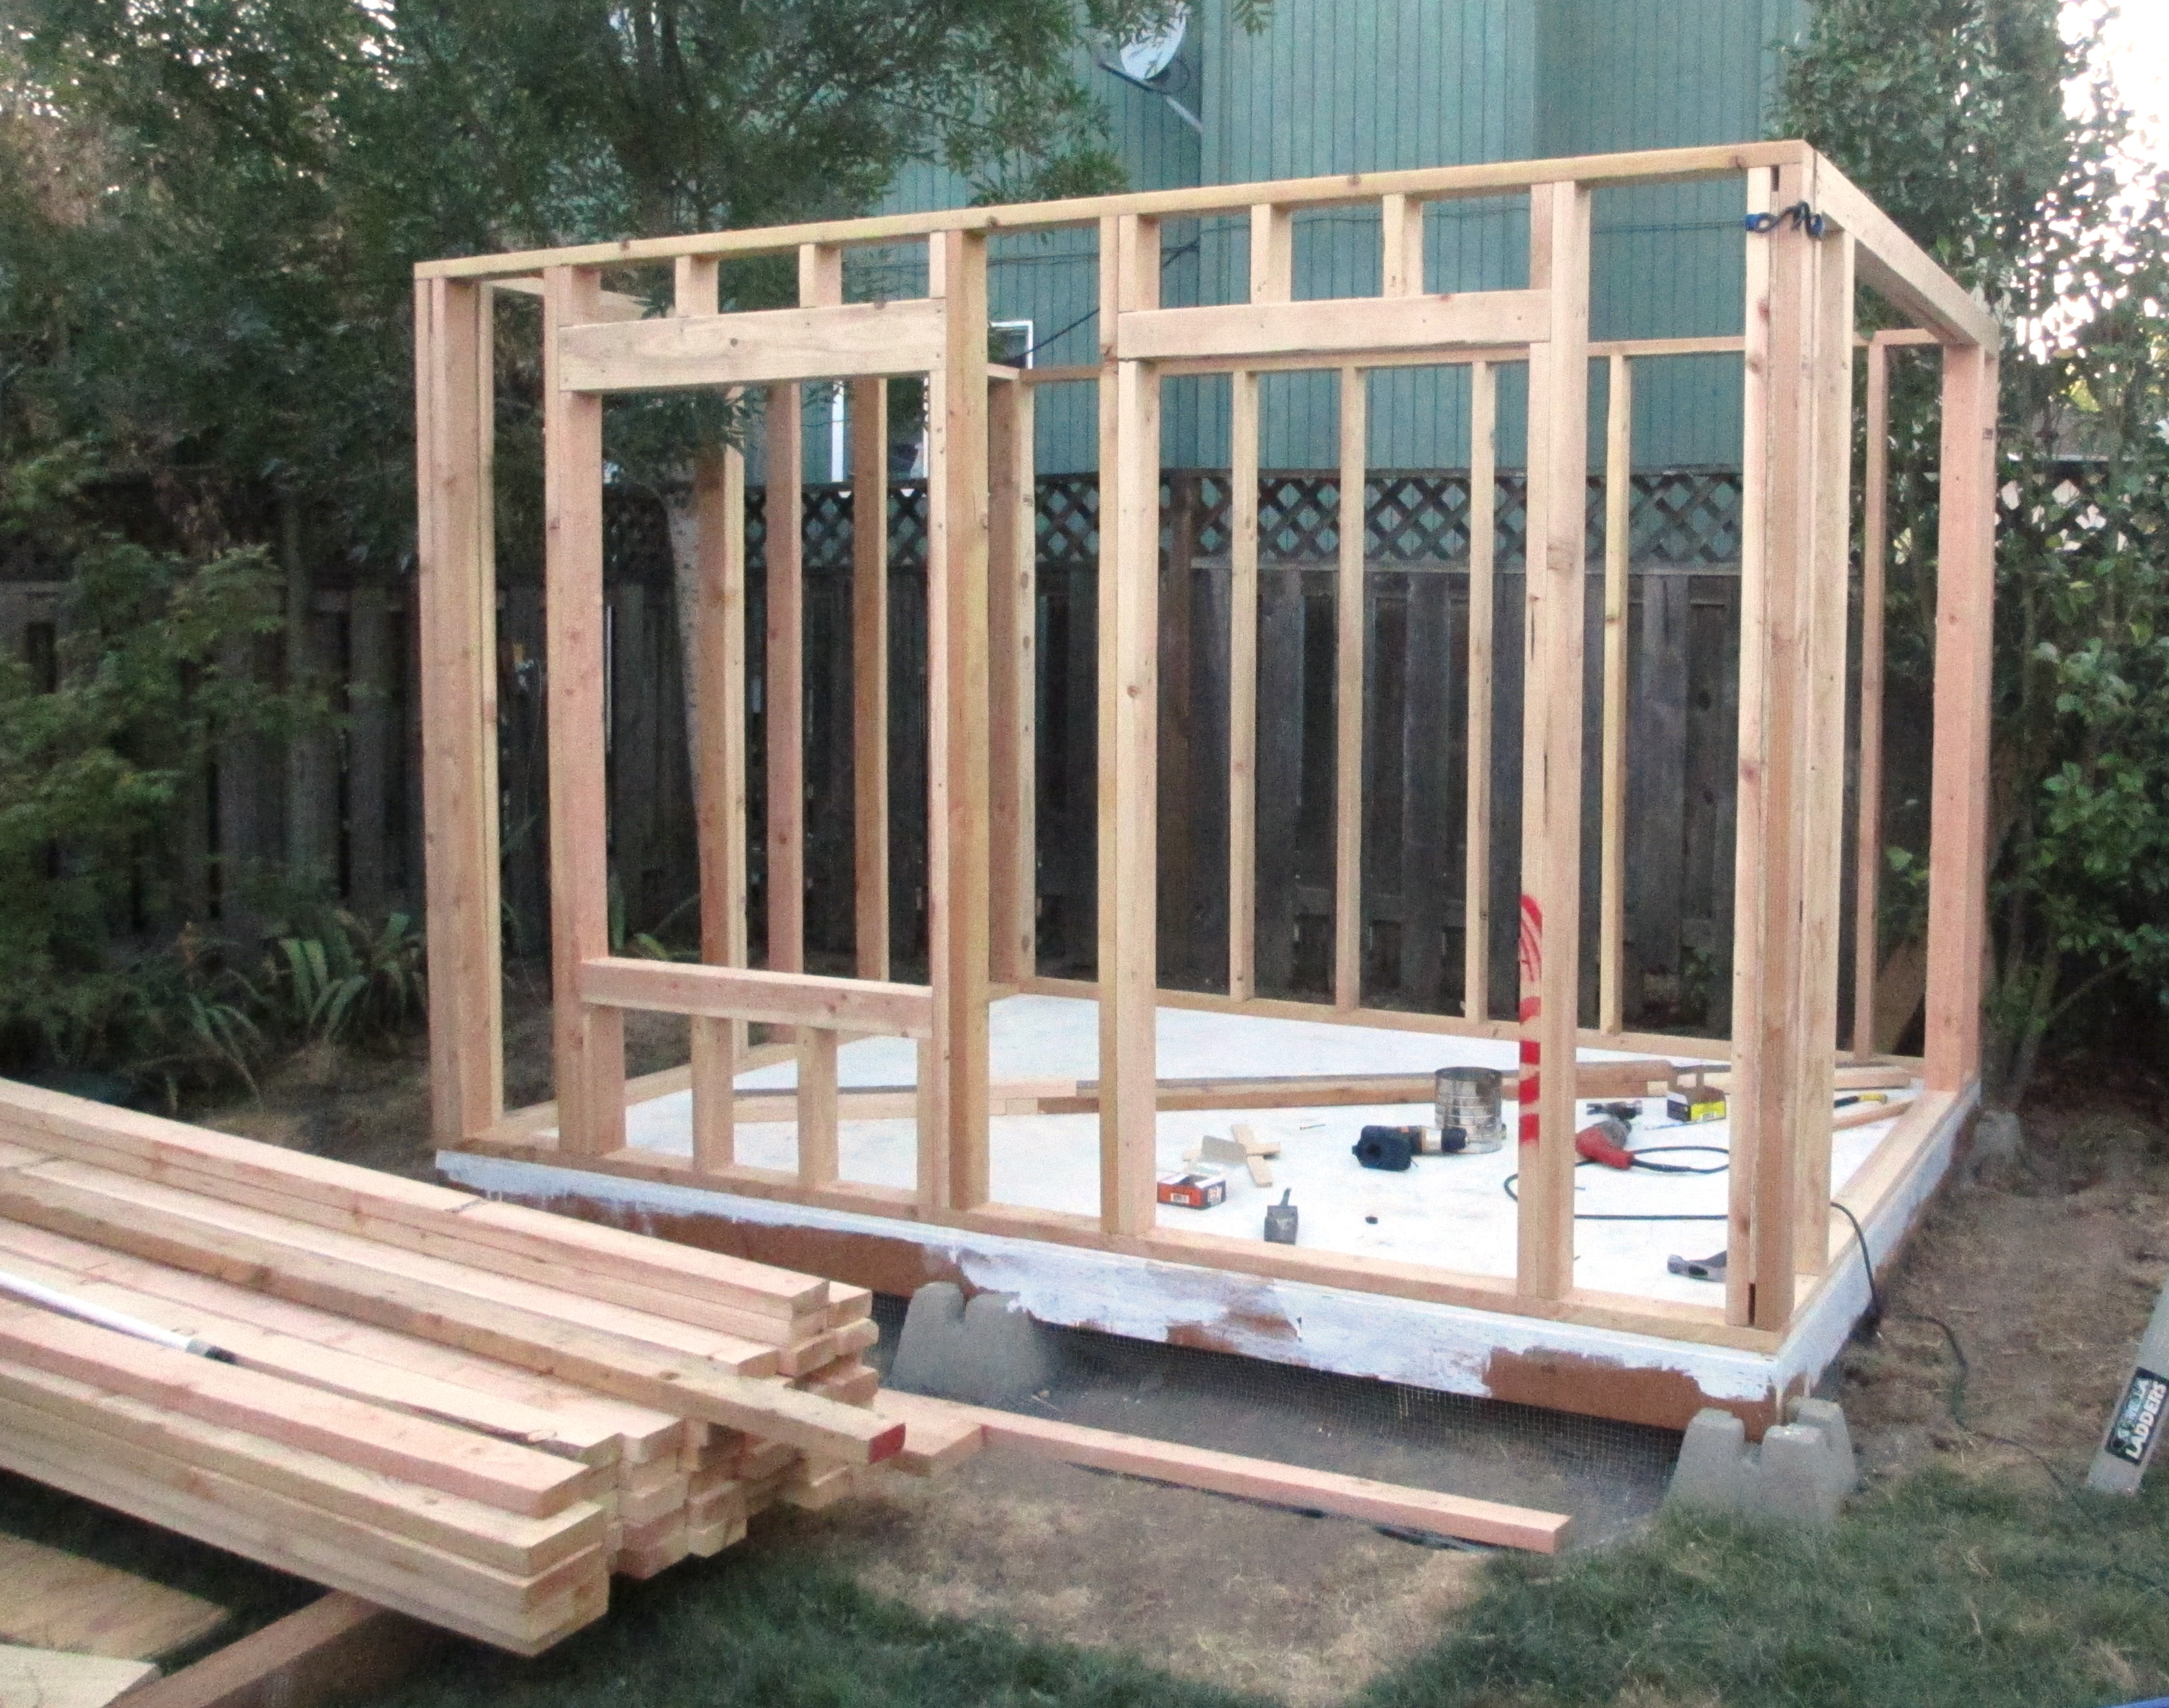 Pdf diy build backyard playhouse plans download building a How to build outdoor playhouse